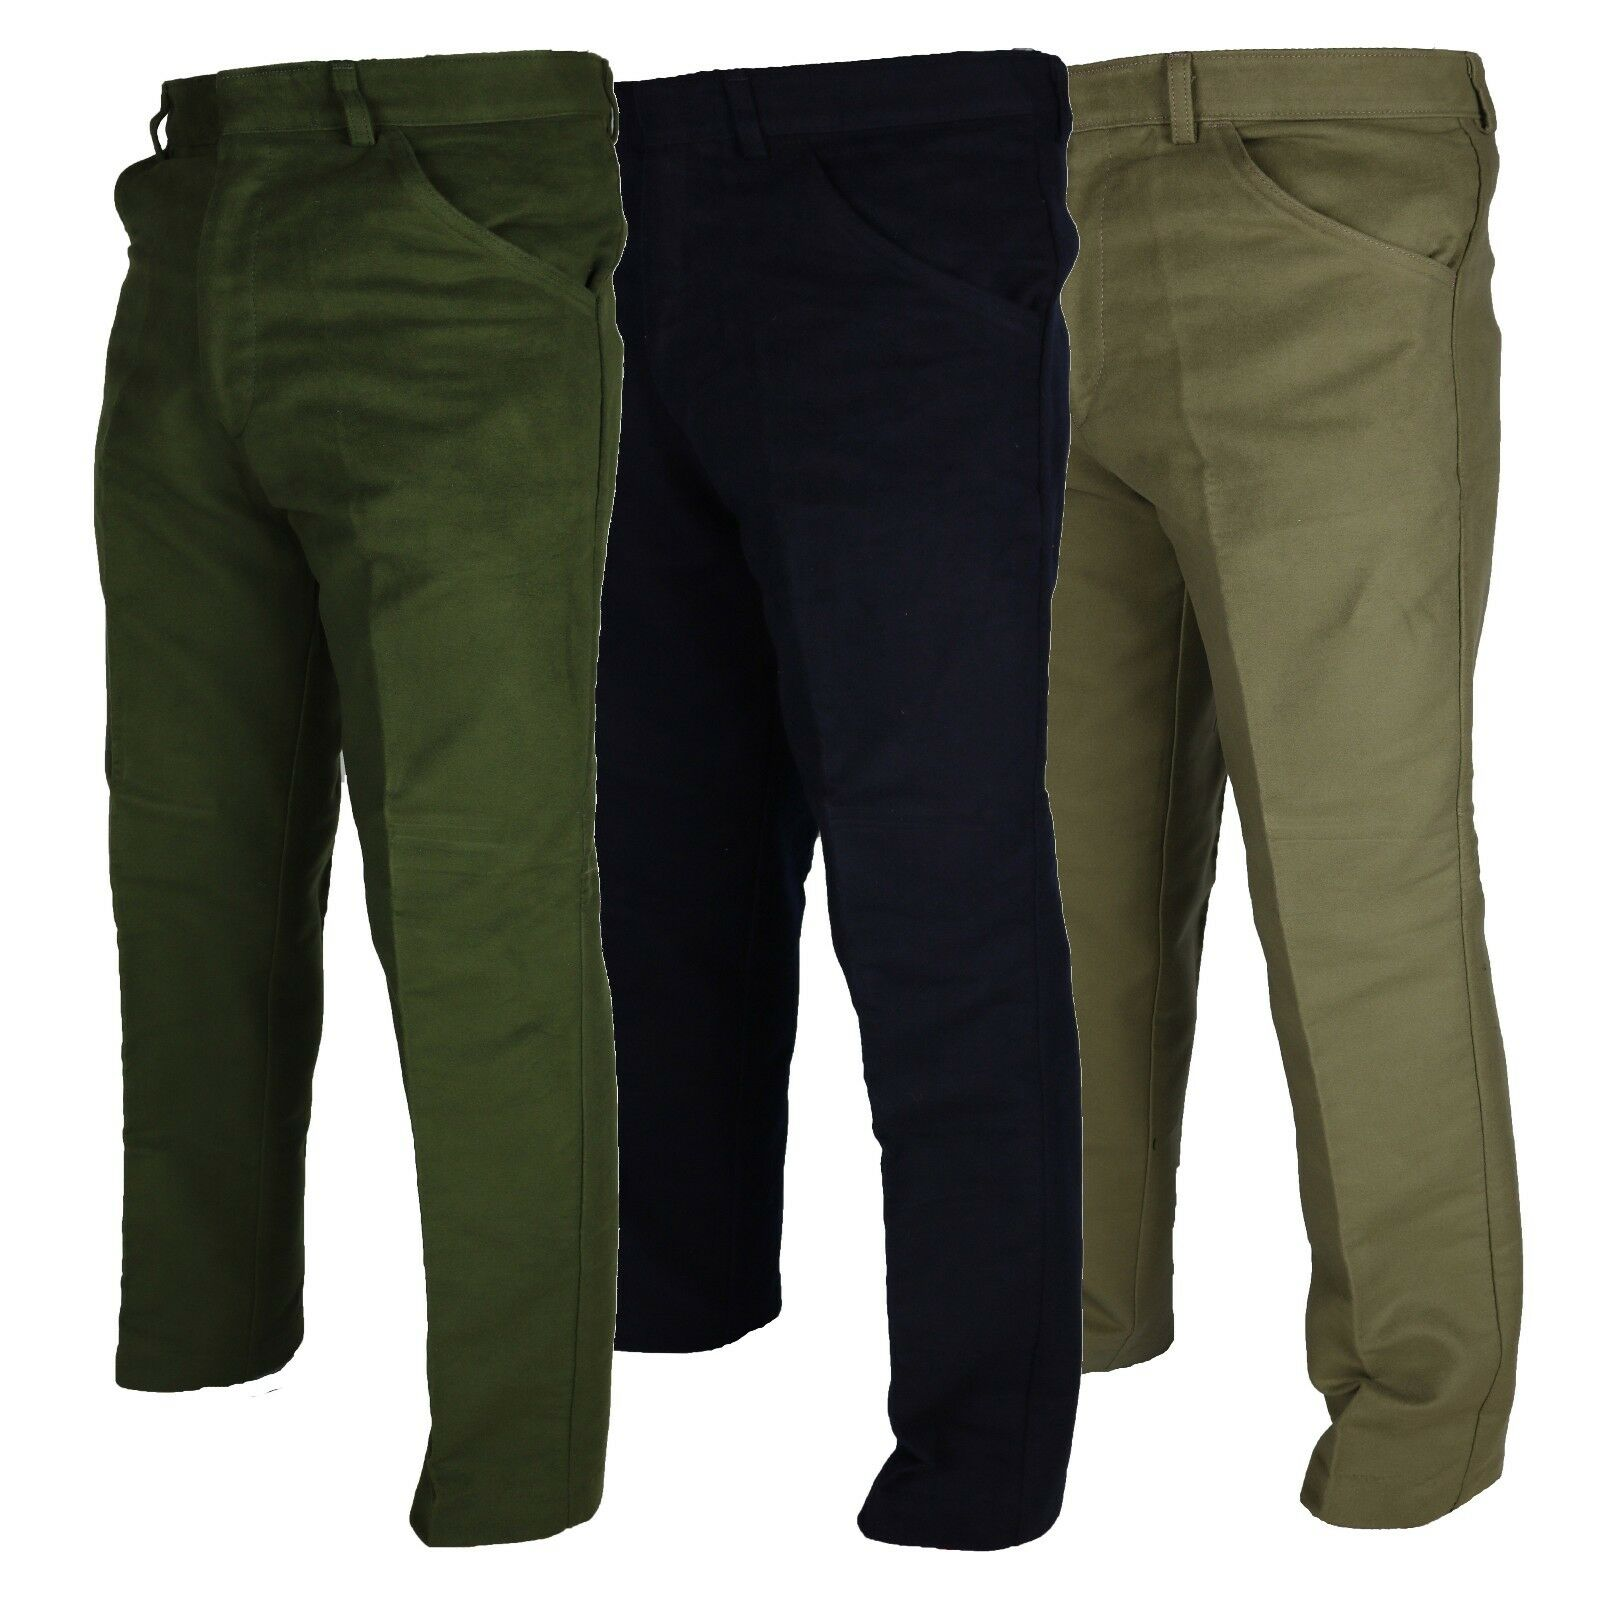 Carabou Mens Moleskin Windproof Outdoor Trousers Sizes 32 – 46 Country Wear